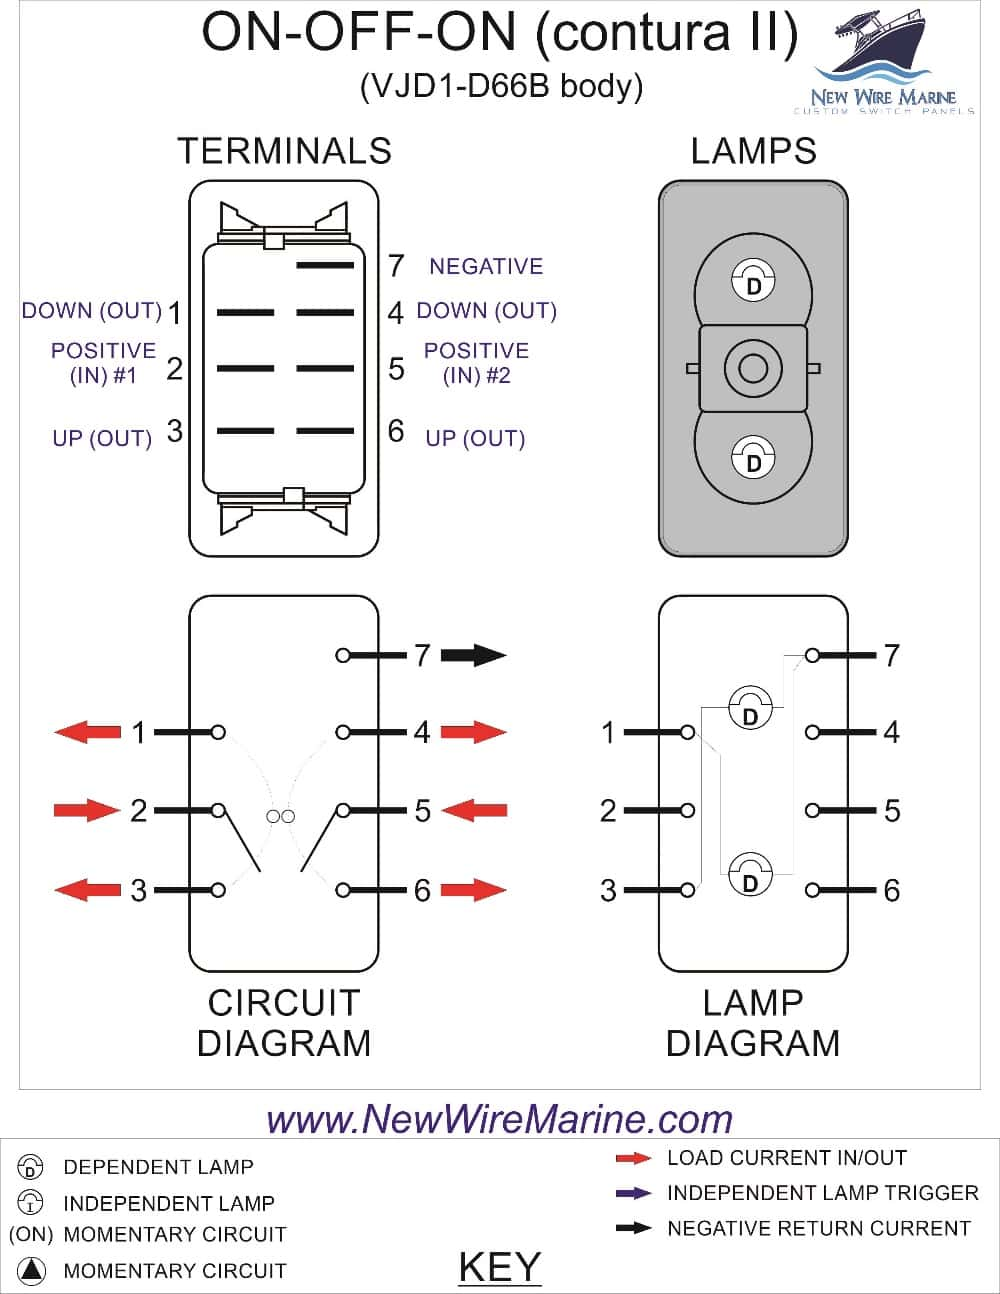 Livewell Timer Wiring Diagram Guide And Troubleshooting Of Defiant Get Free Image About For Ranger Boat Rig Rite